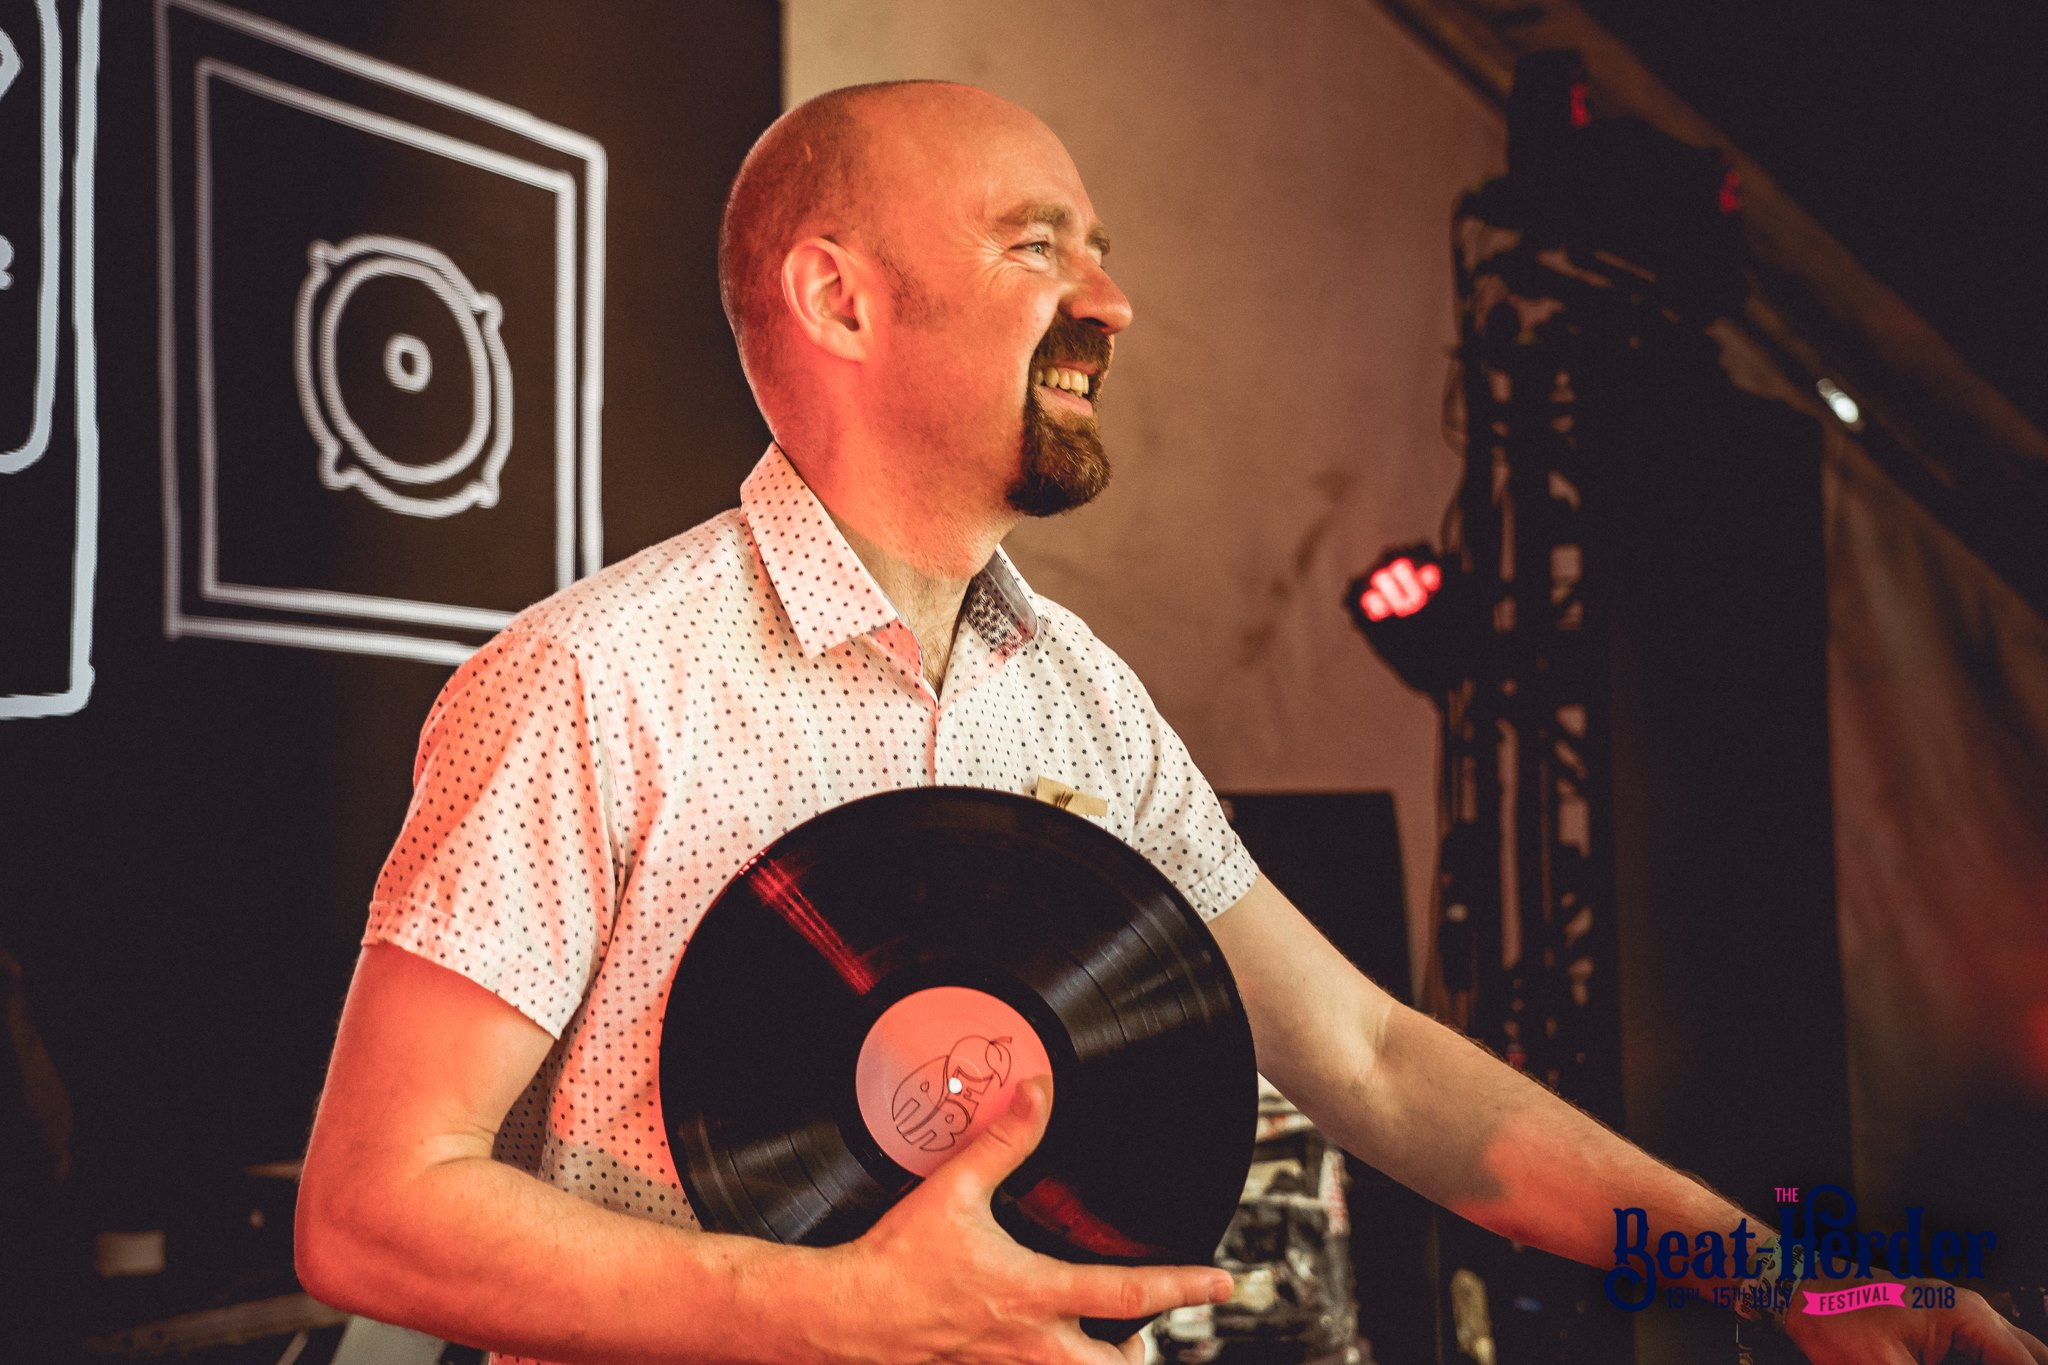 Mr Scruff at Beatherder Festival 2018